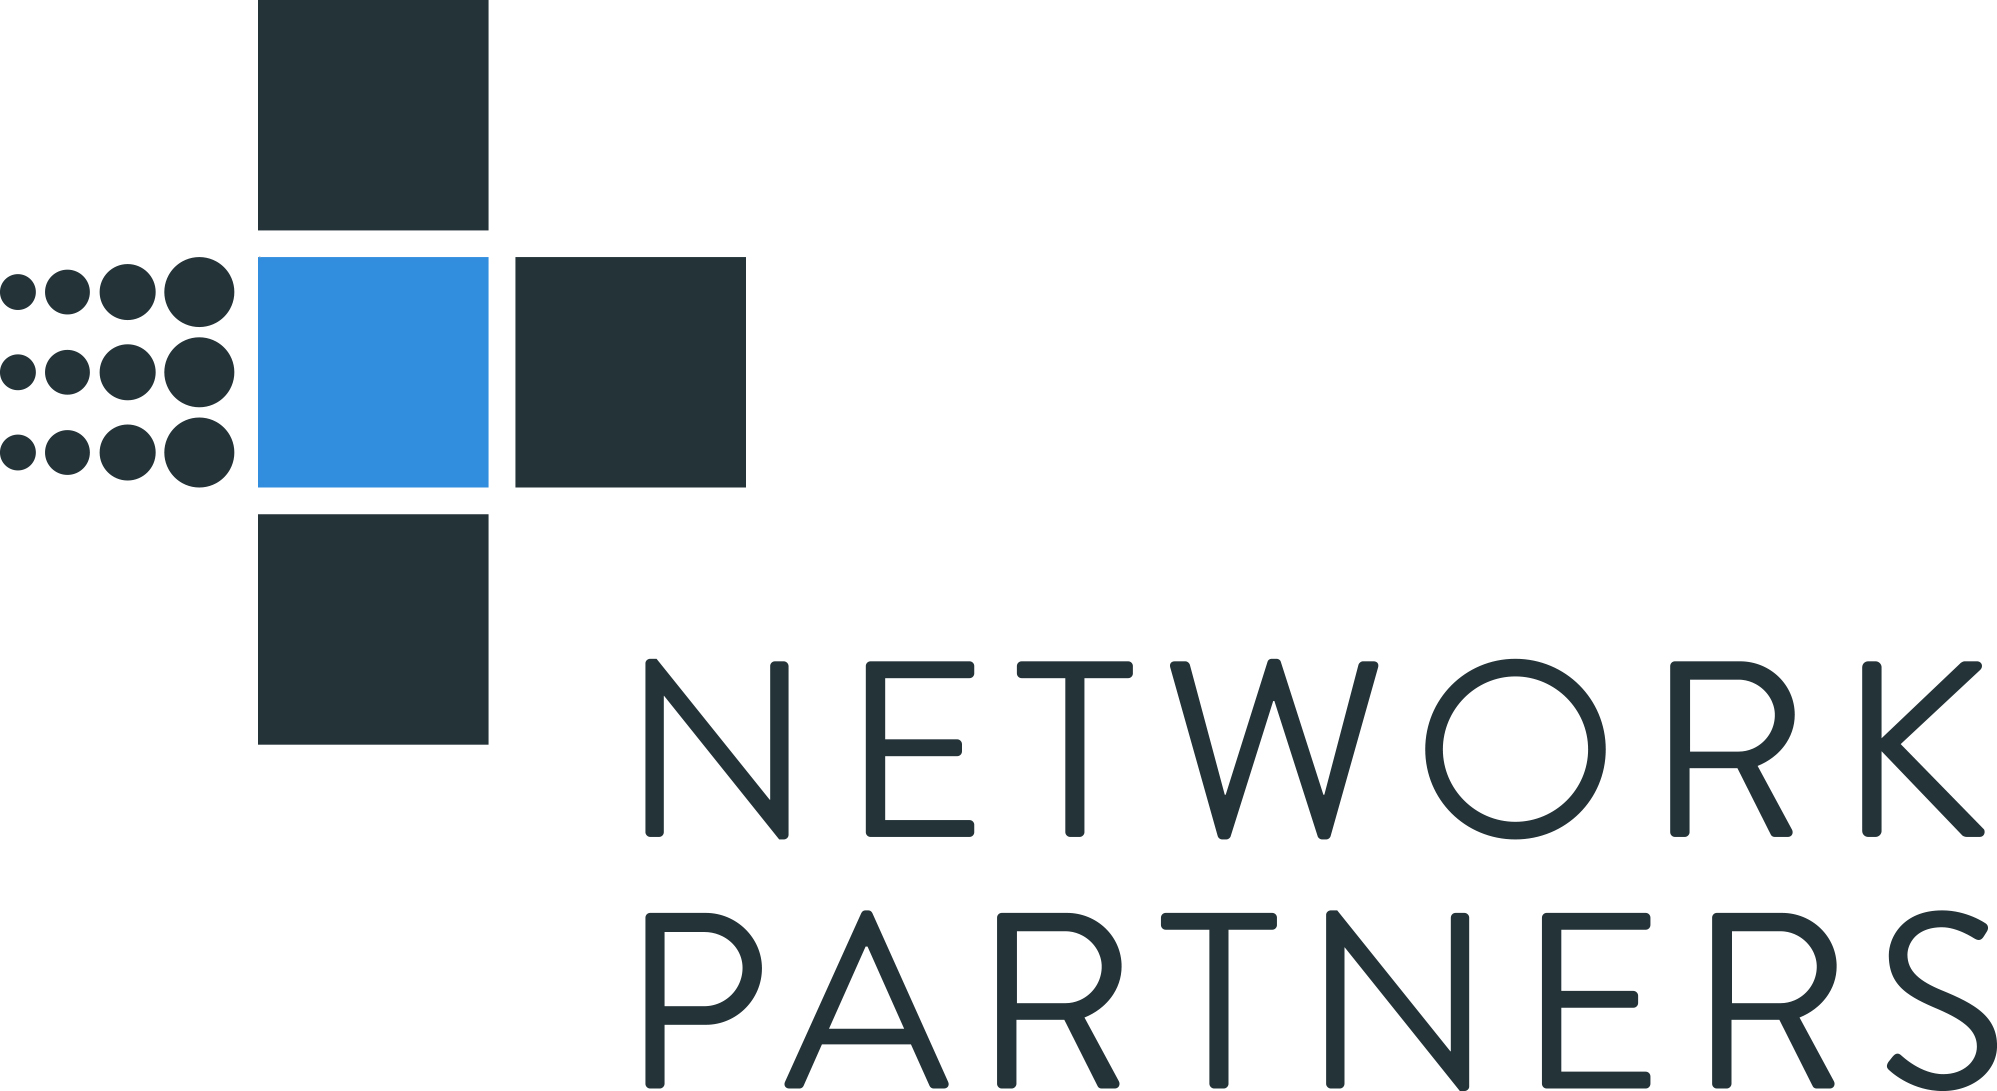 Network_Partners_HD_Graphic